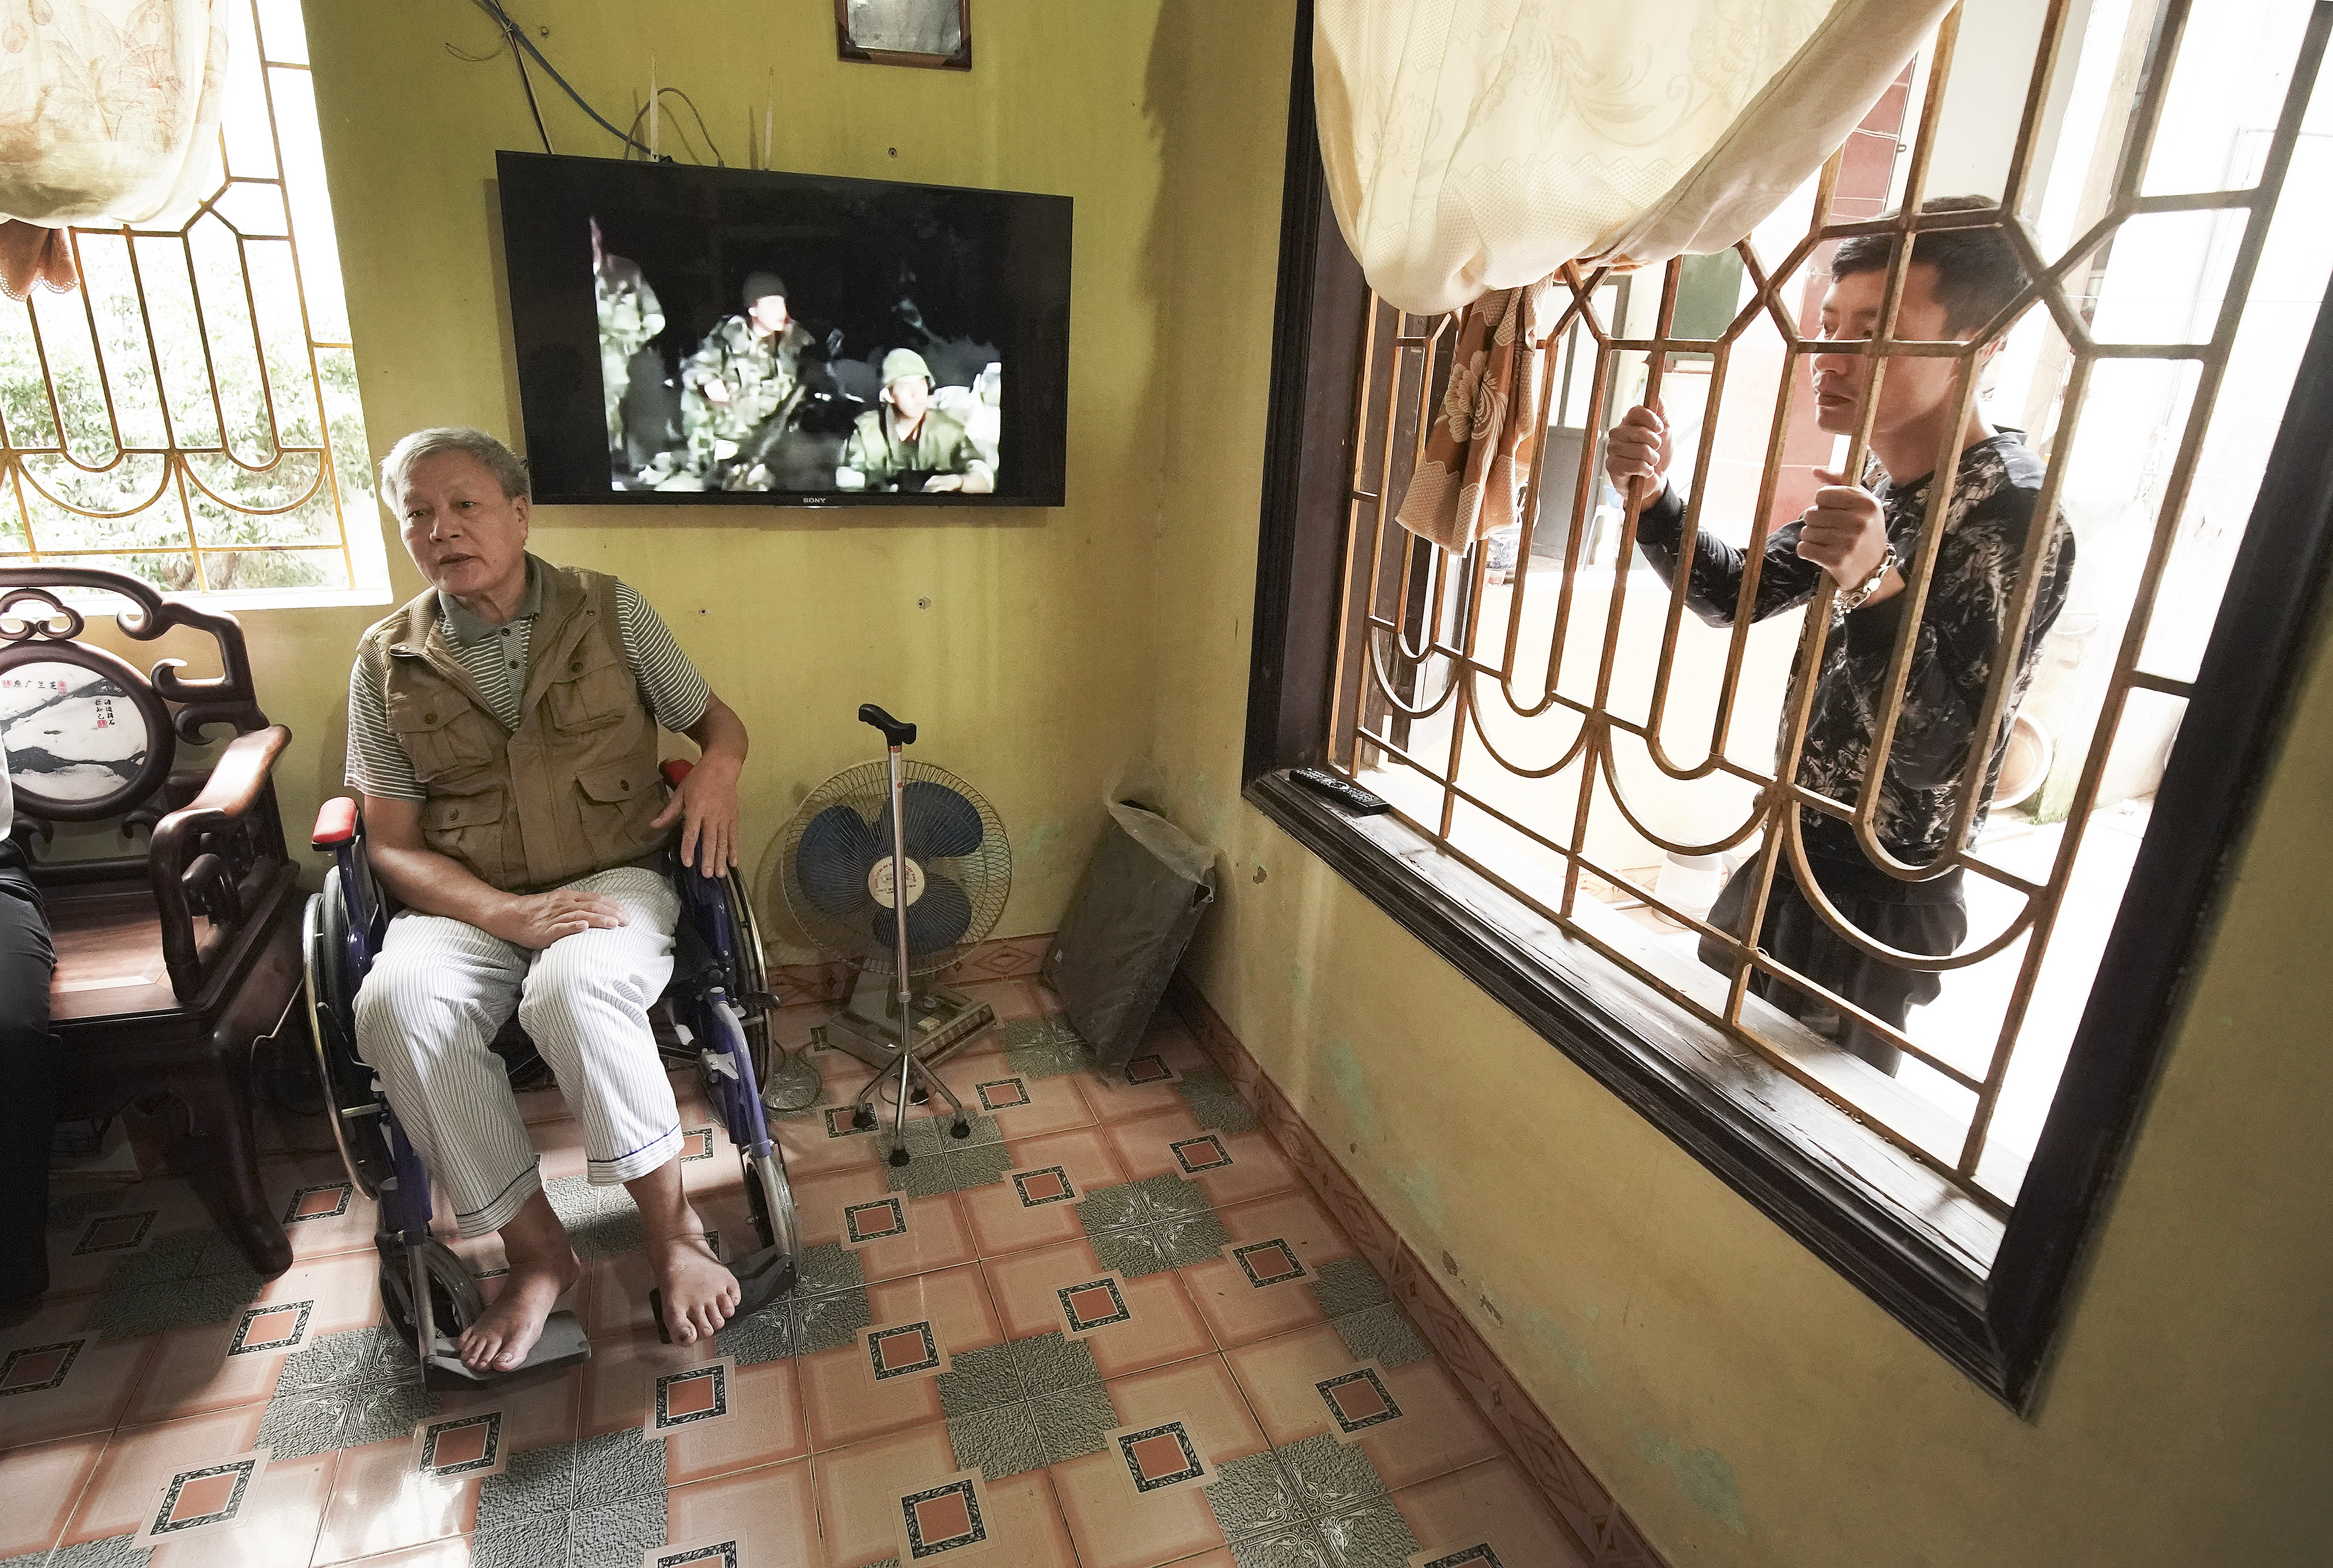 Tai Quang Pham sits in his wheelchair given to him by Latter-day Saints Charities in Hanoi, Vietnam on Saturday, Nov. 16, 2019. His son Mai Thi Pham looks through the window.